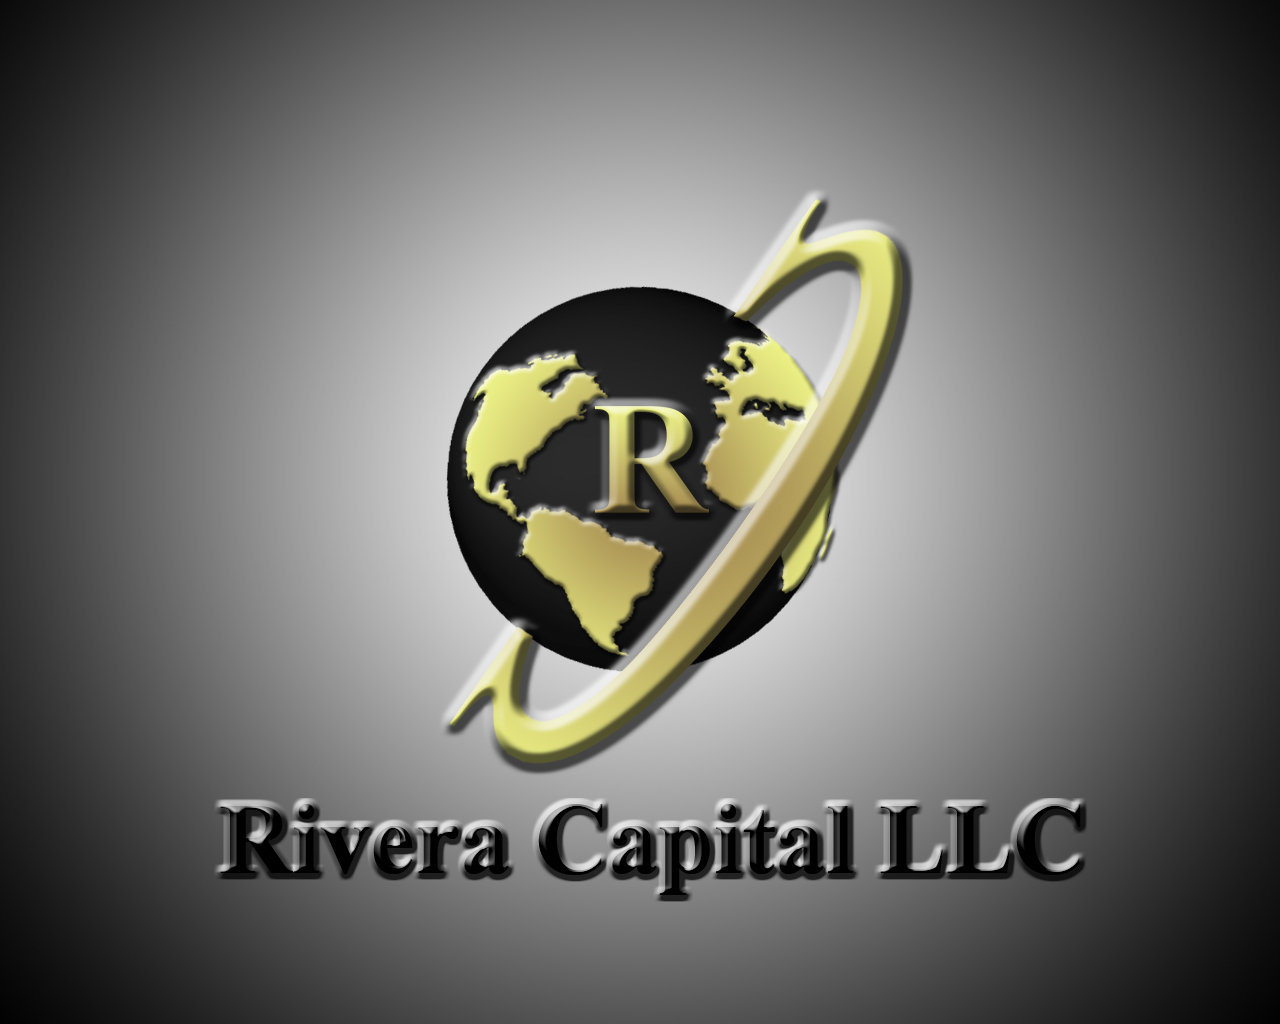 Logo Design by Mythos Designs - Entry No. 124 in the Logo Design Contest Logo Design Needed for Exciting New Company Rivera Capital LLC LLC.